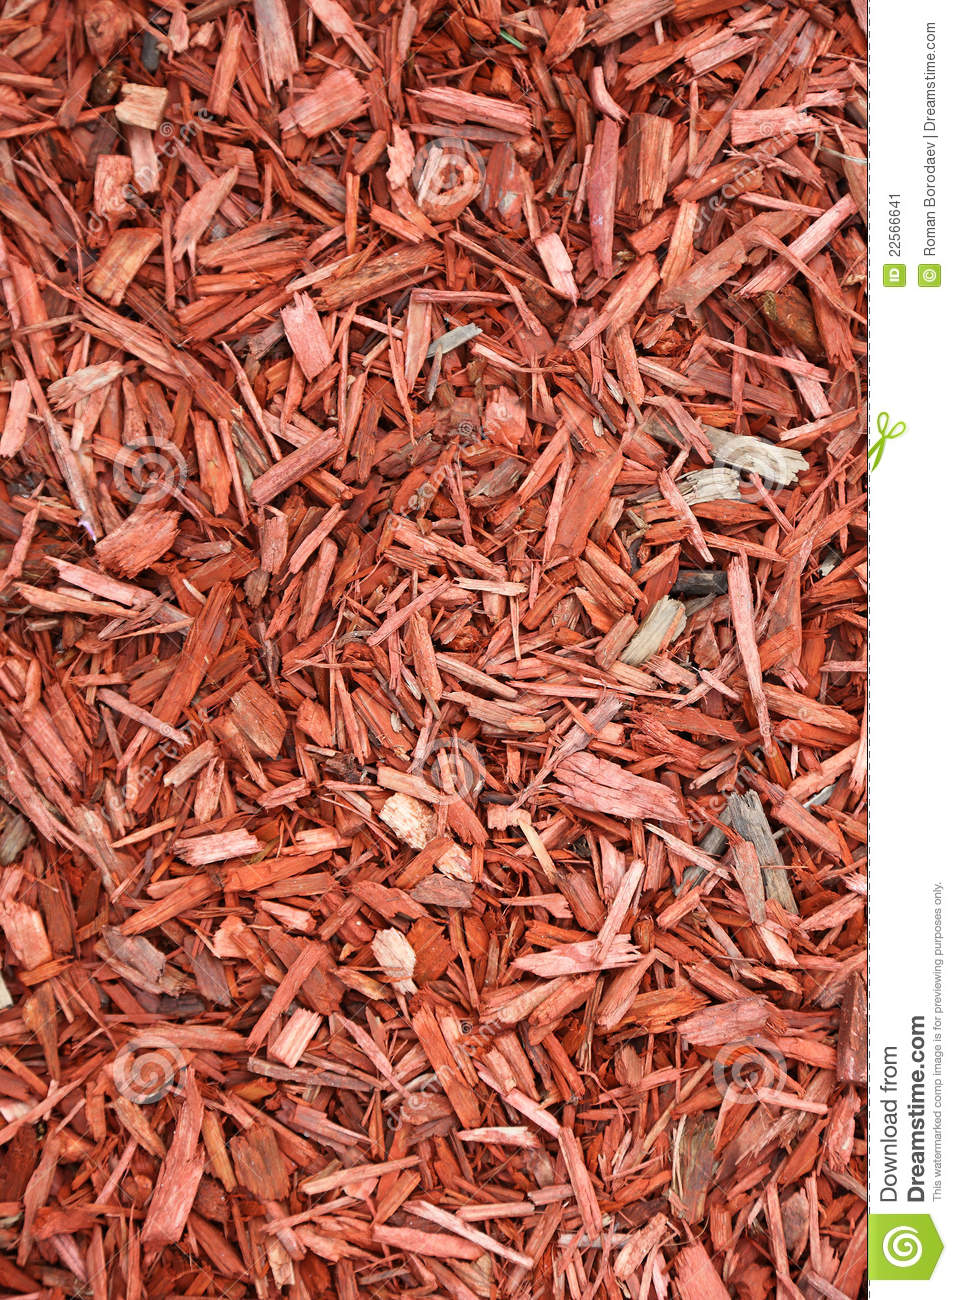 Red woodchips as background.